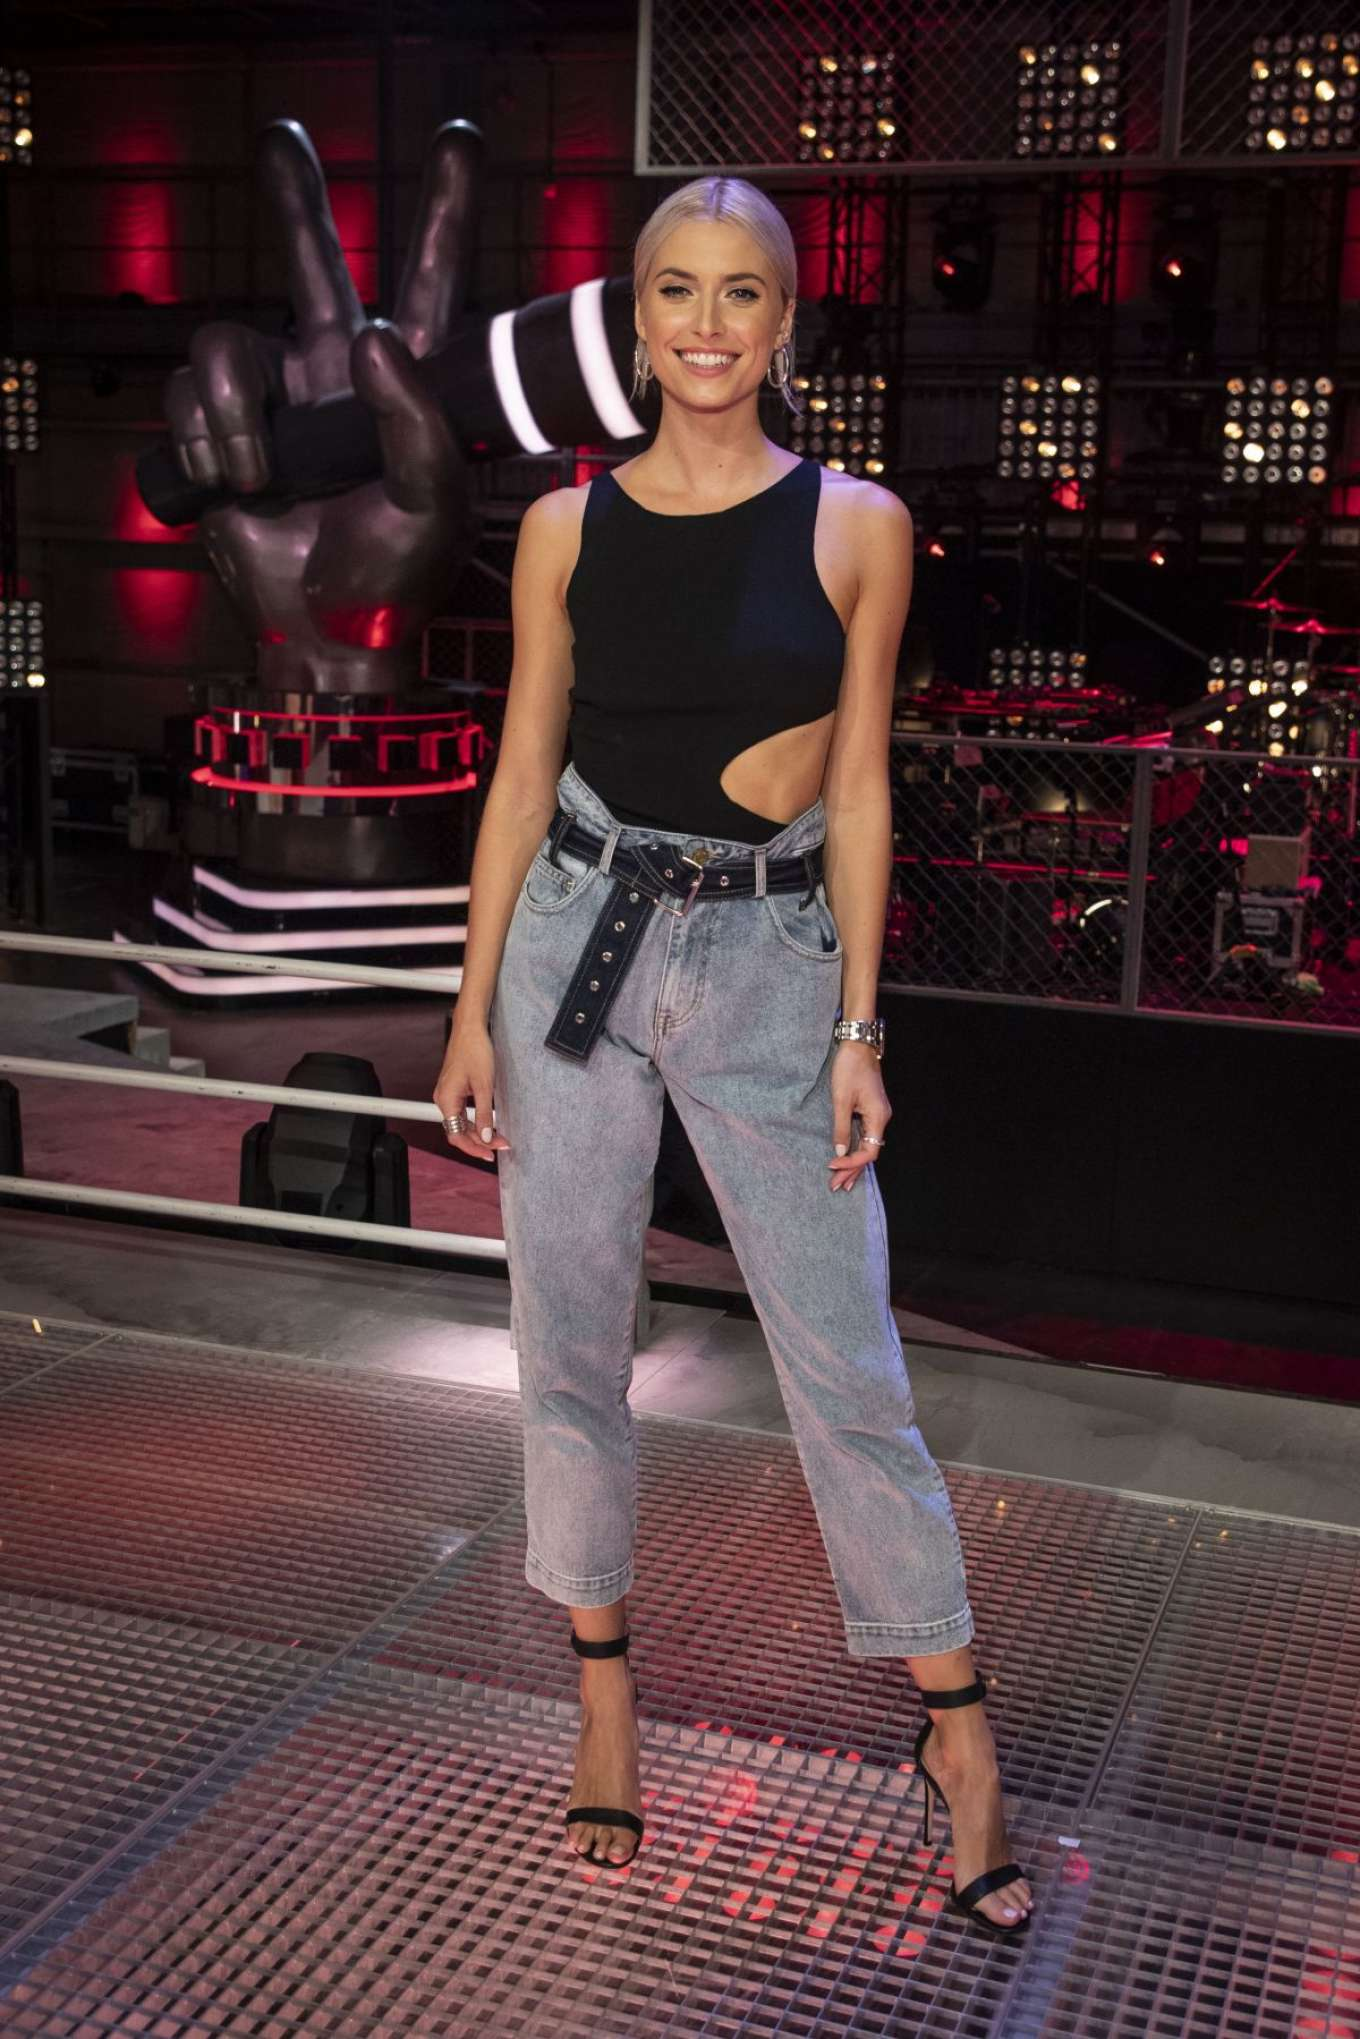 Lena Gercke - The Voice of Germany Promos